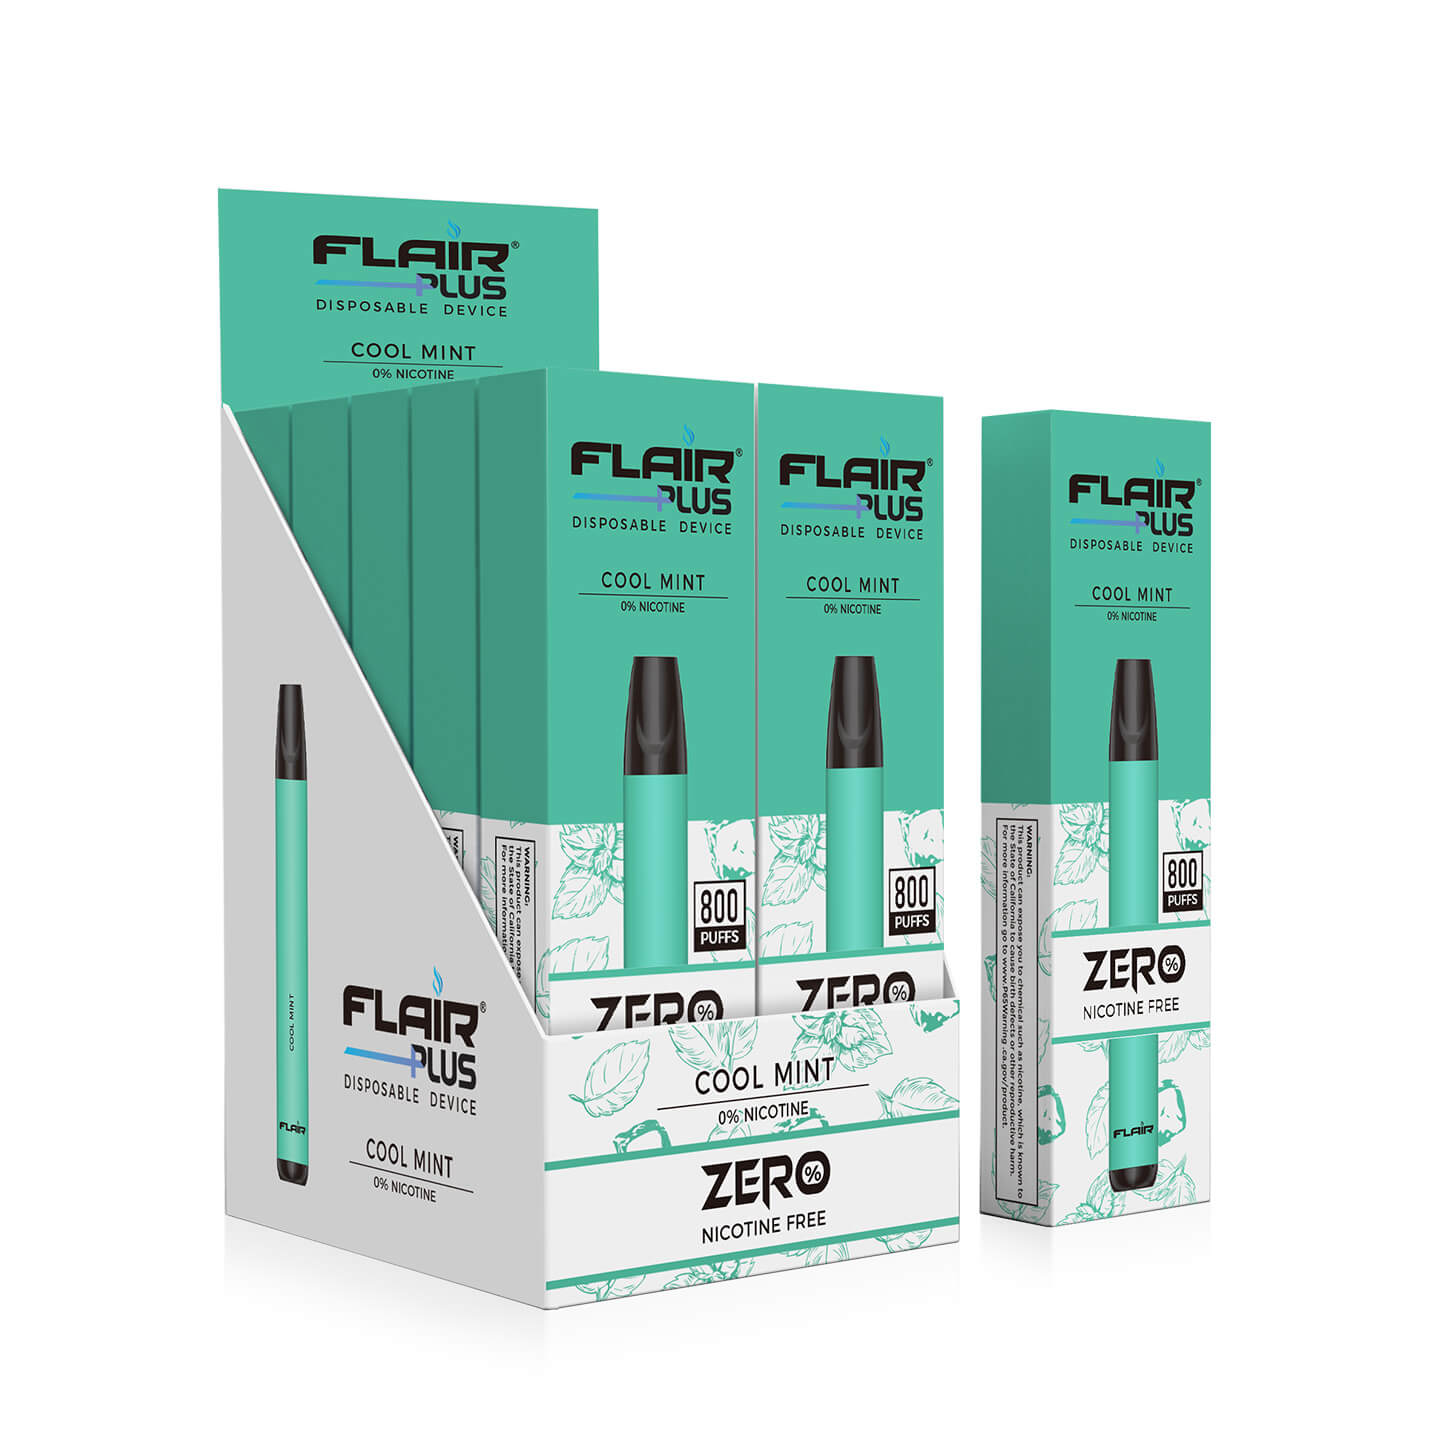 Box of flair disposable device zero nicotine cool mint